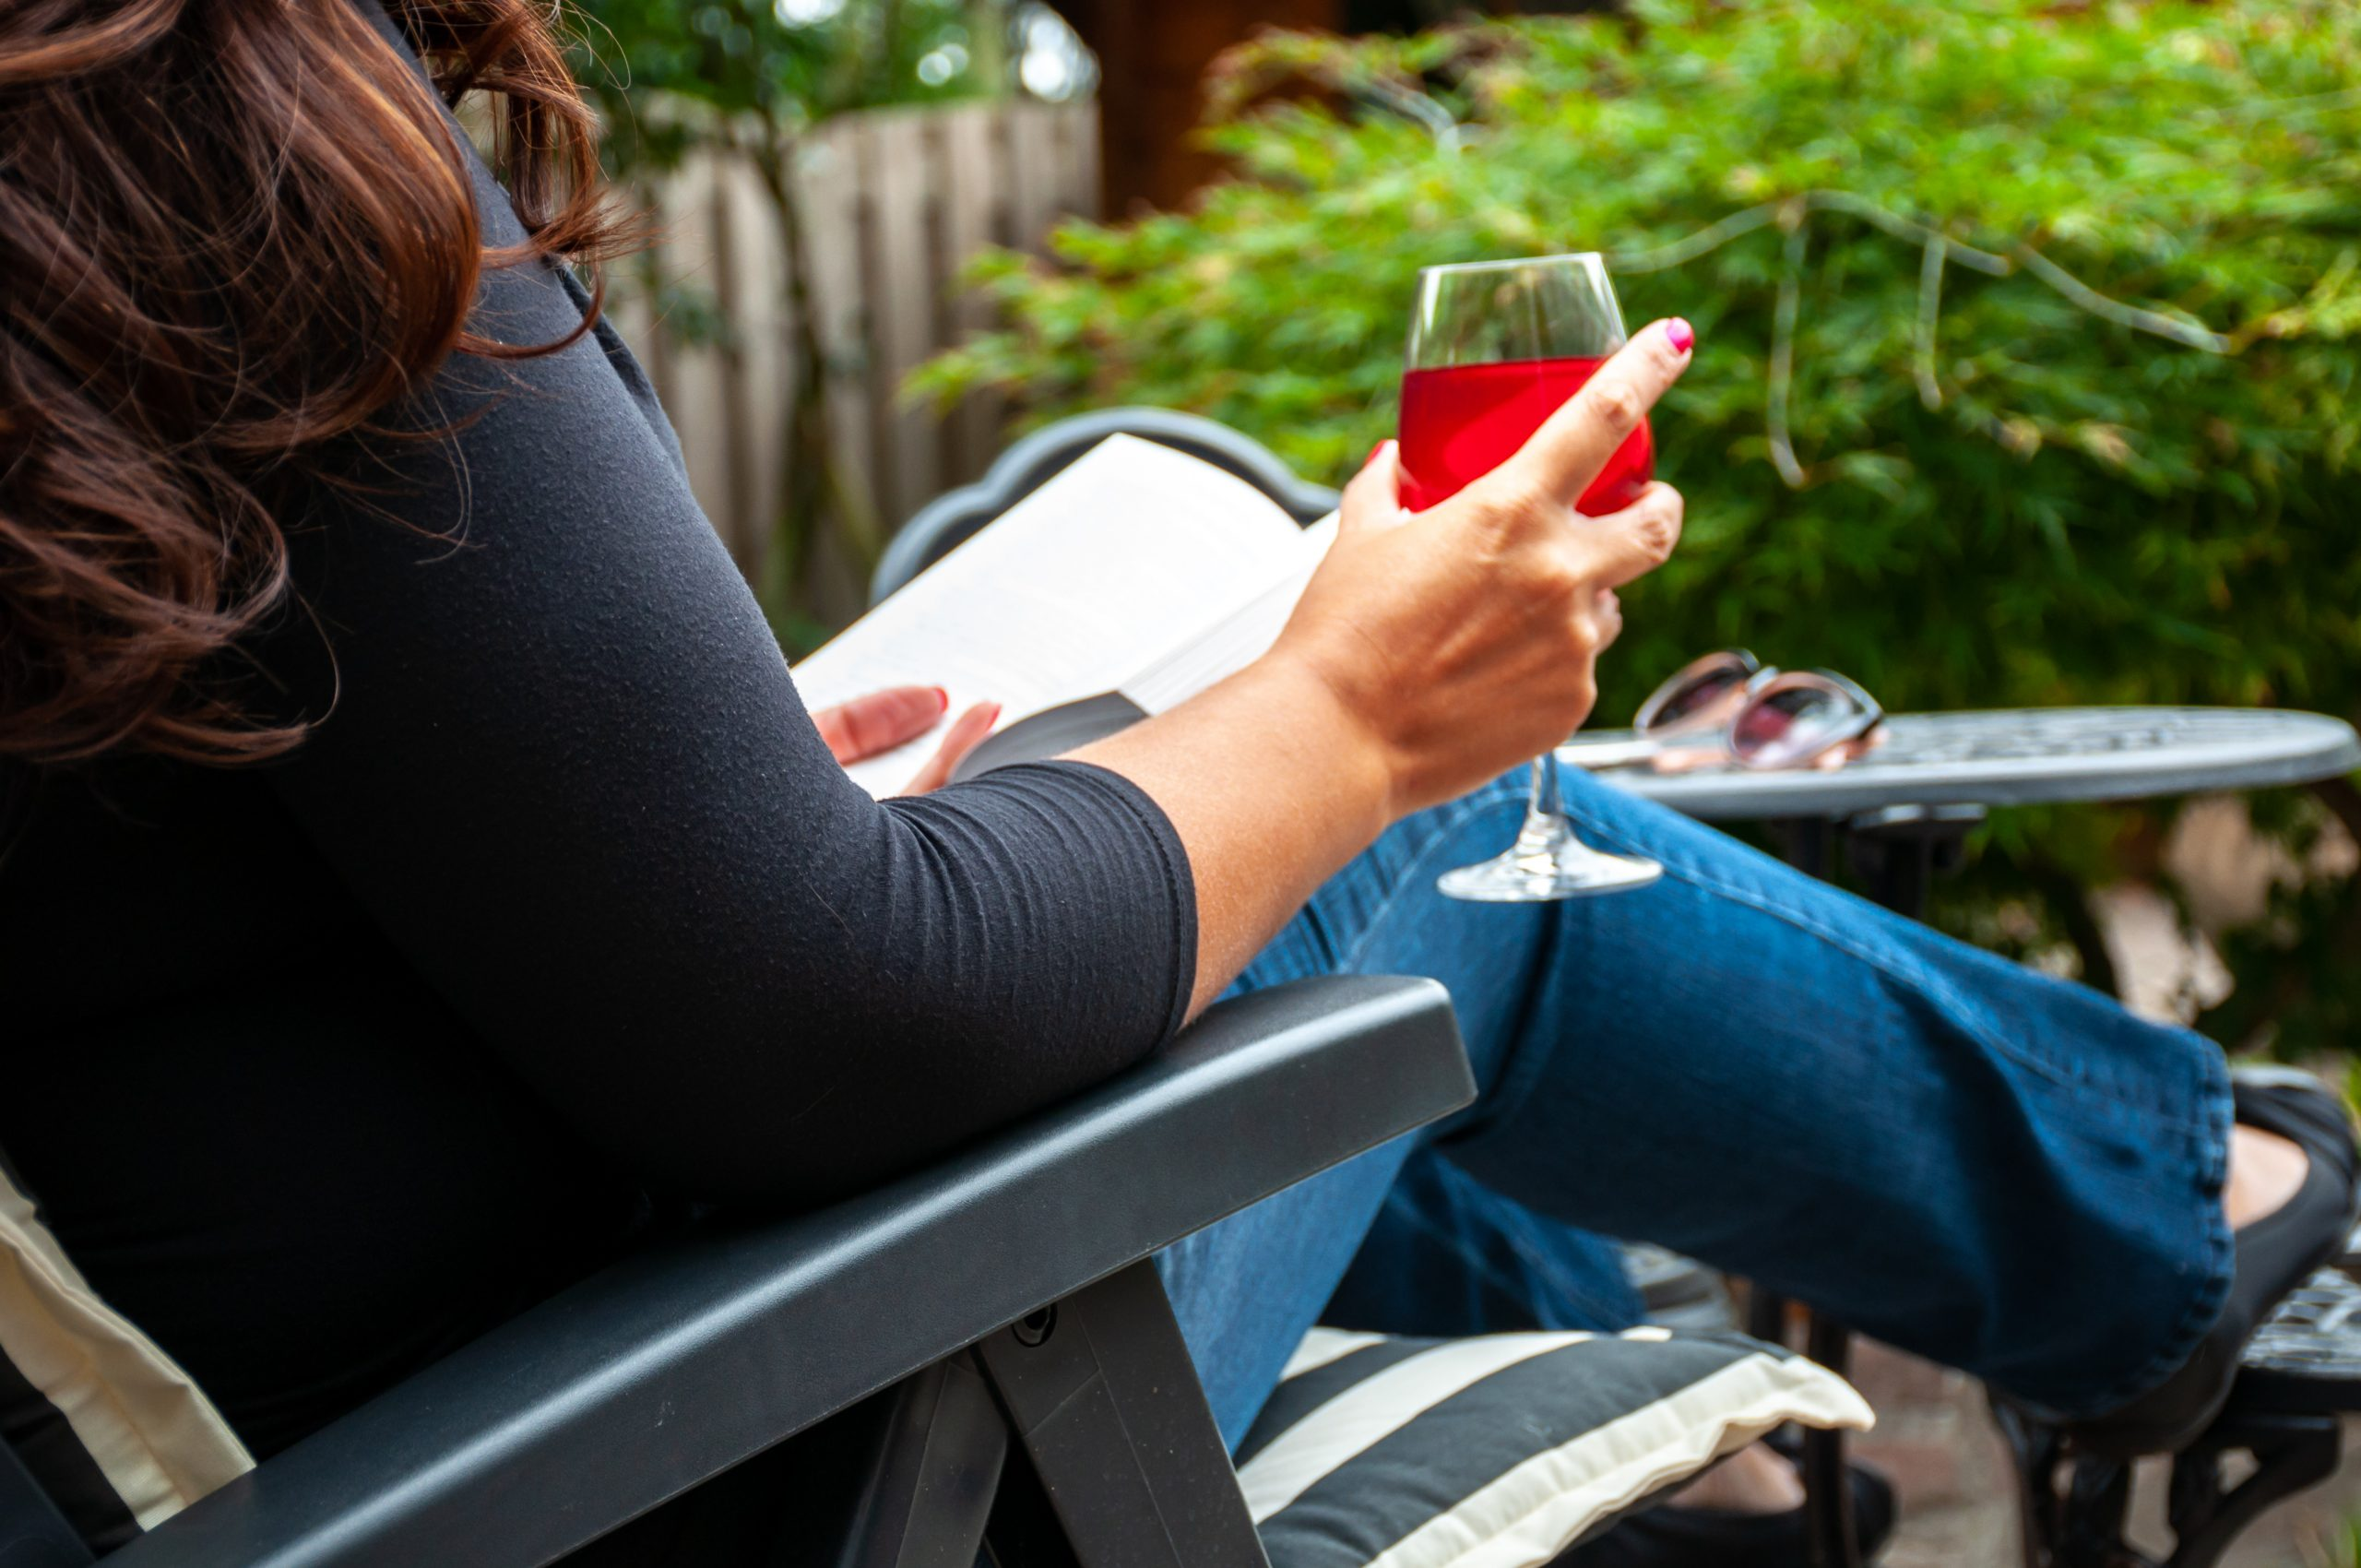 woman in black shirt and blue jeans drinking glass of red wine outside